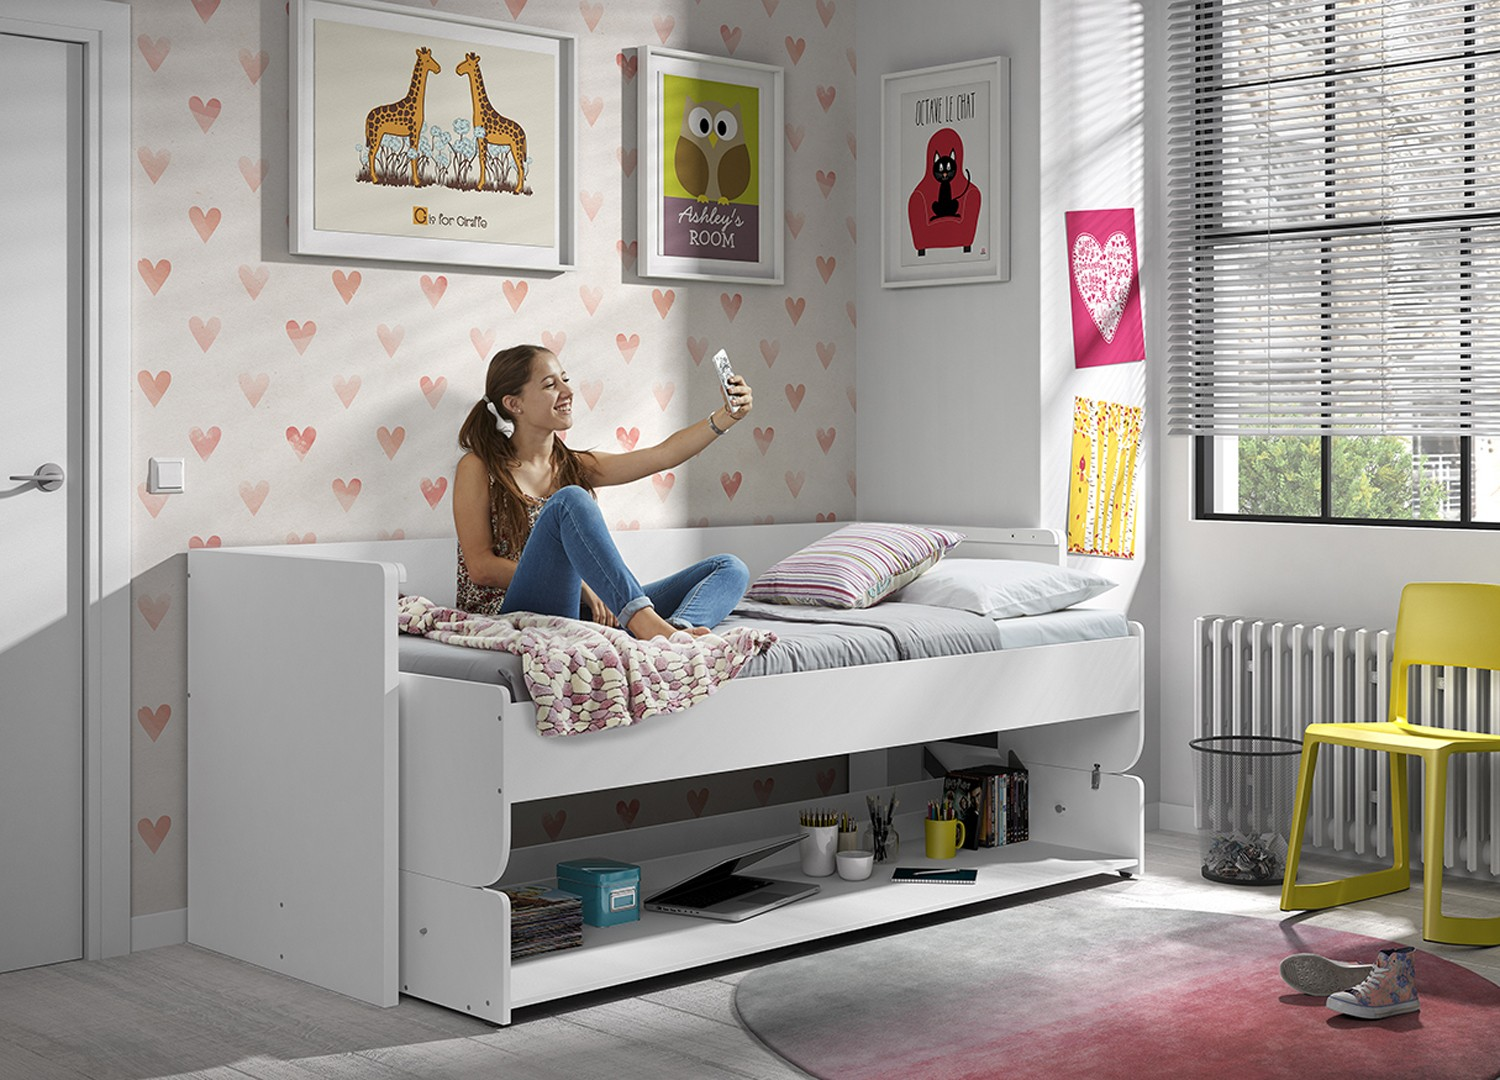 lit gain de place studio cool le lit gain de place avec bureau rtractable lit hypnos euros chez. Black Bedroom Furniture Sets. Home Design Ideas